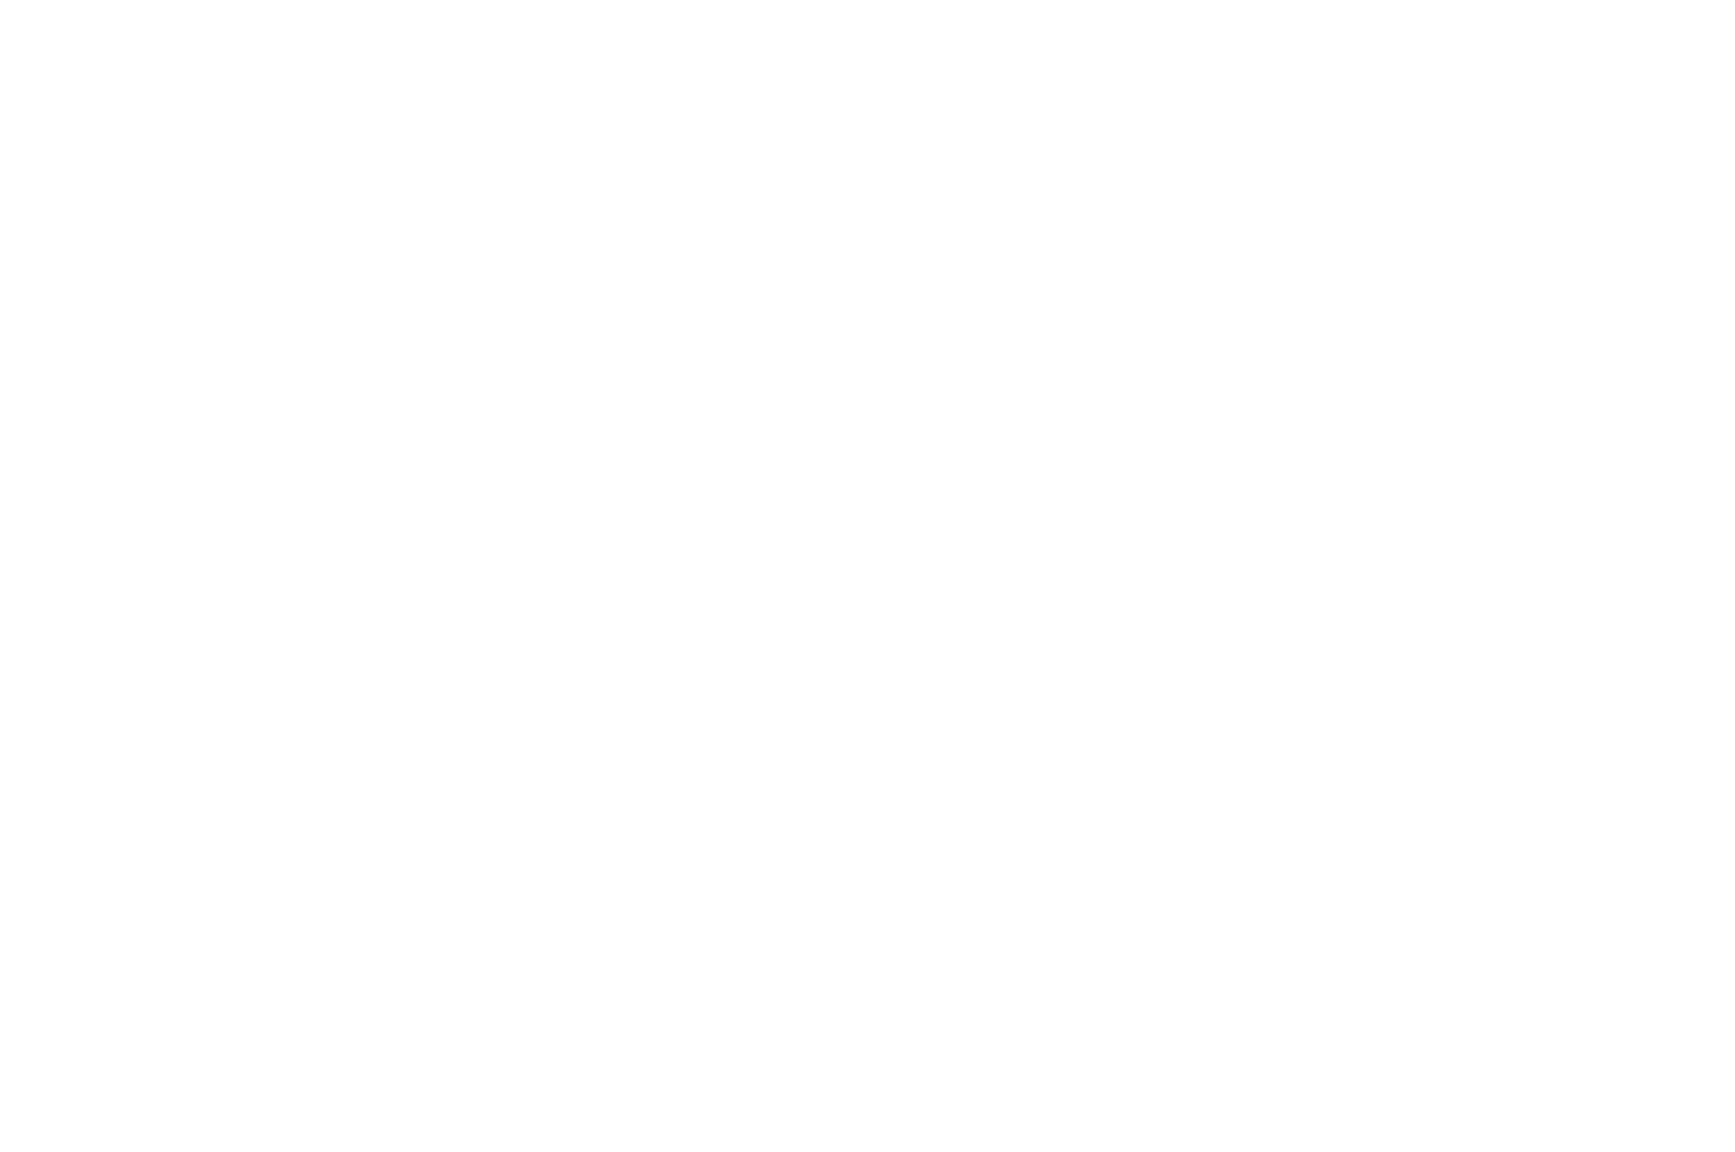 OFFICIAL SELECTION - Madras Independent Film Festival - 2020